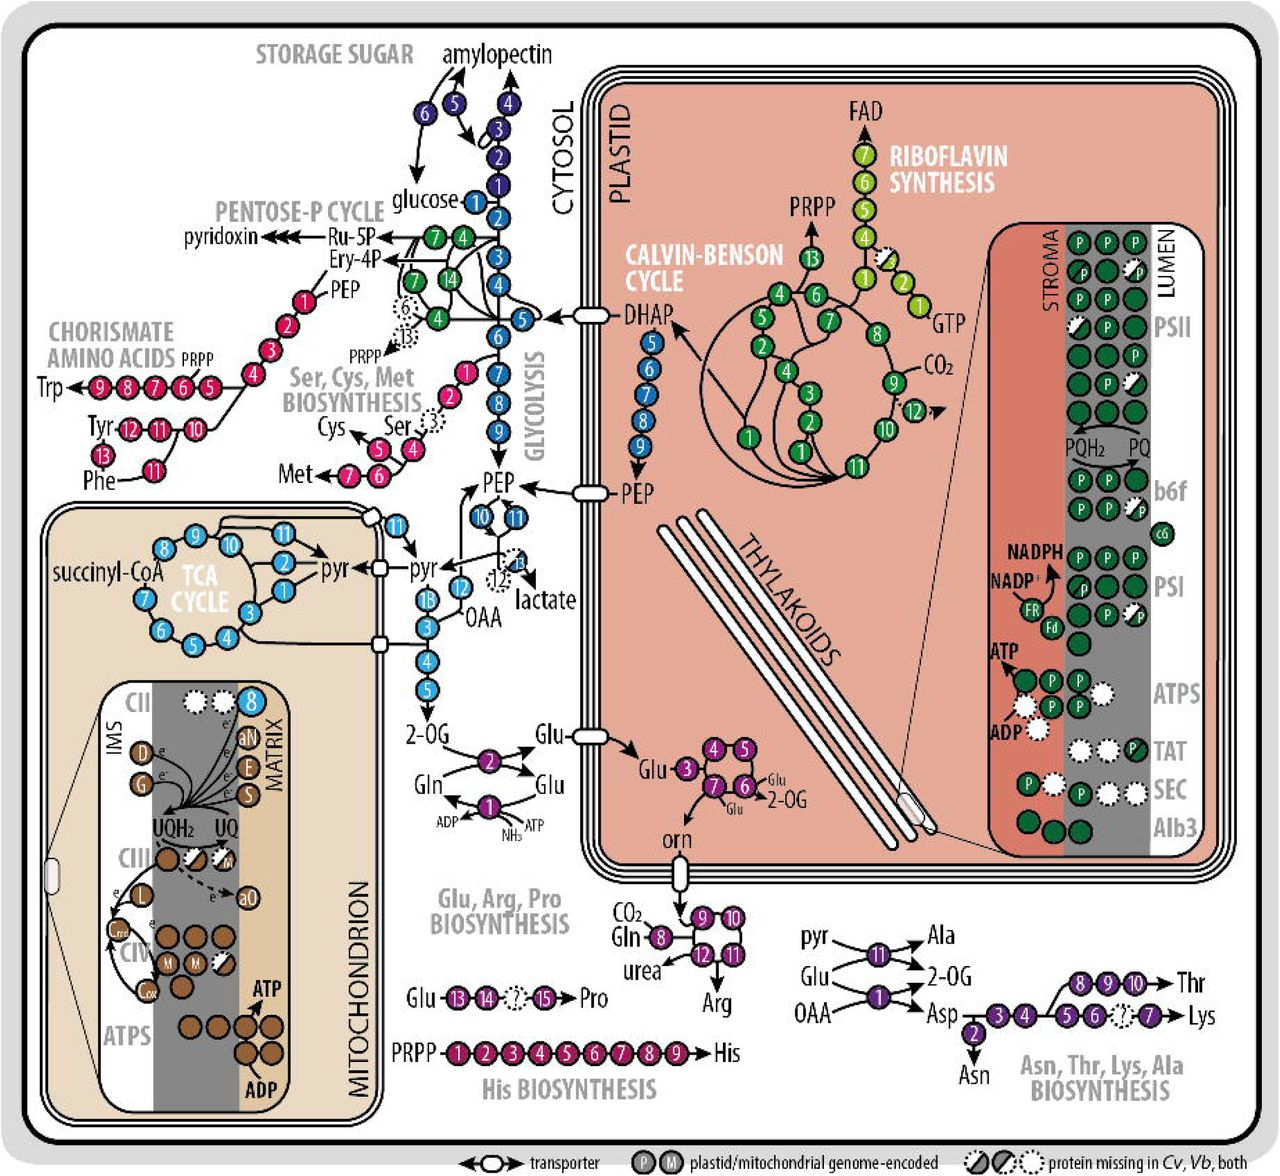 Subcellular compartments interplay for carbon and nitrogen